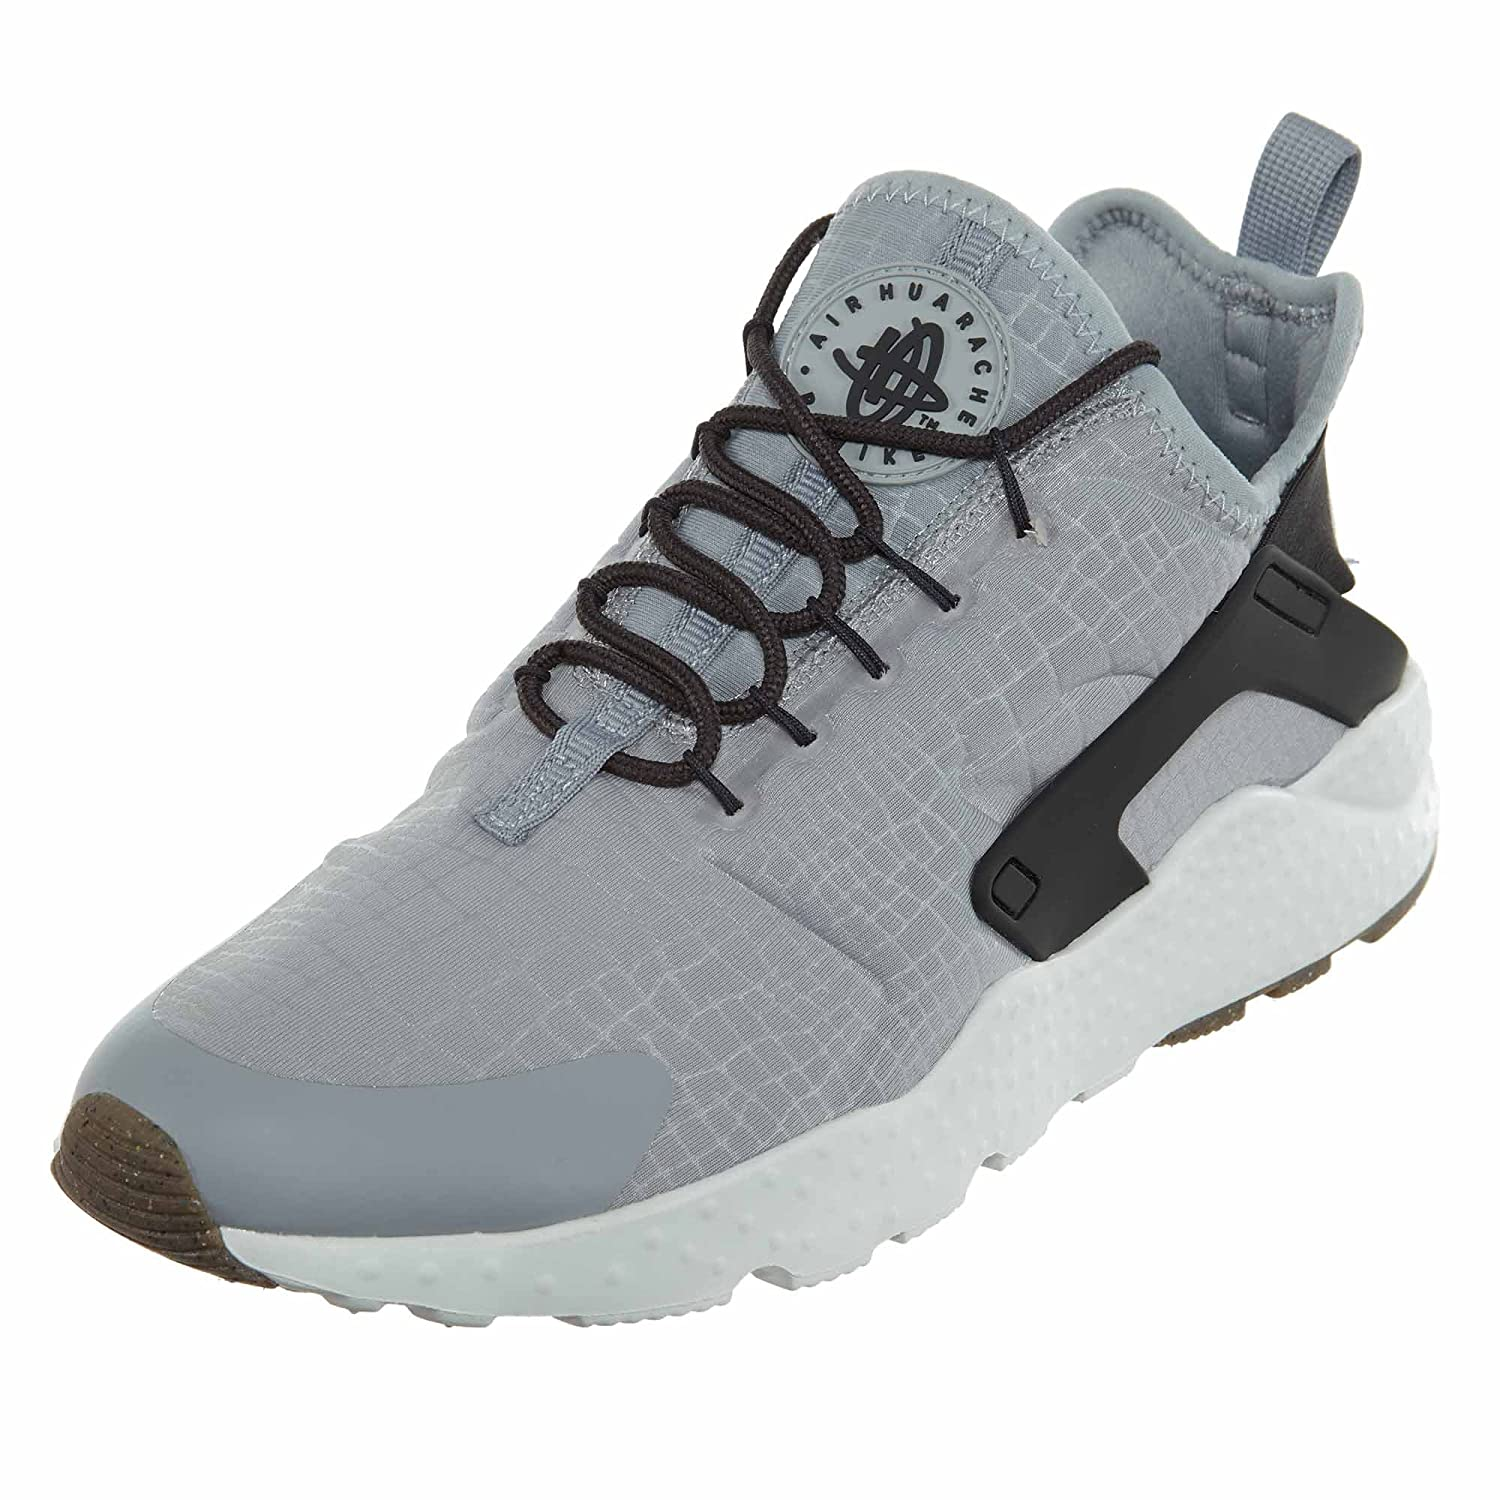 Nike Air Huarache Run Ultra damen Style    819151 Style    819151-013 Größe   8.5 B(M) US d792d2